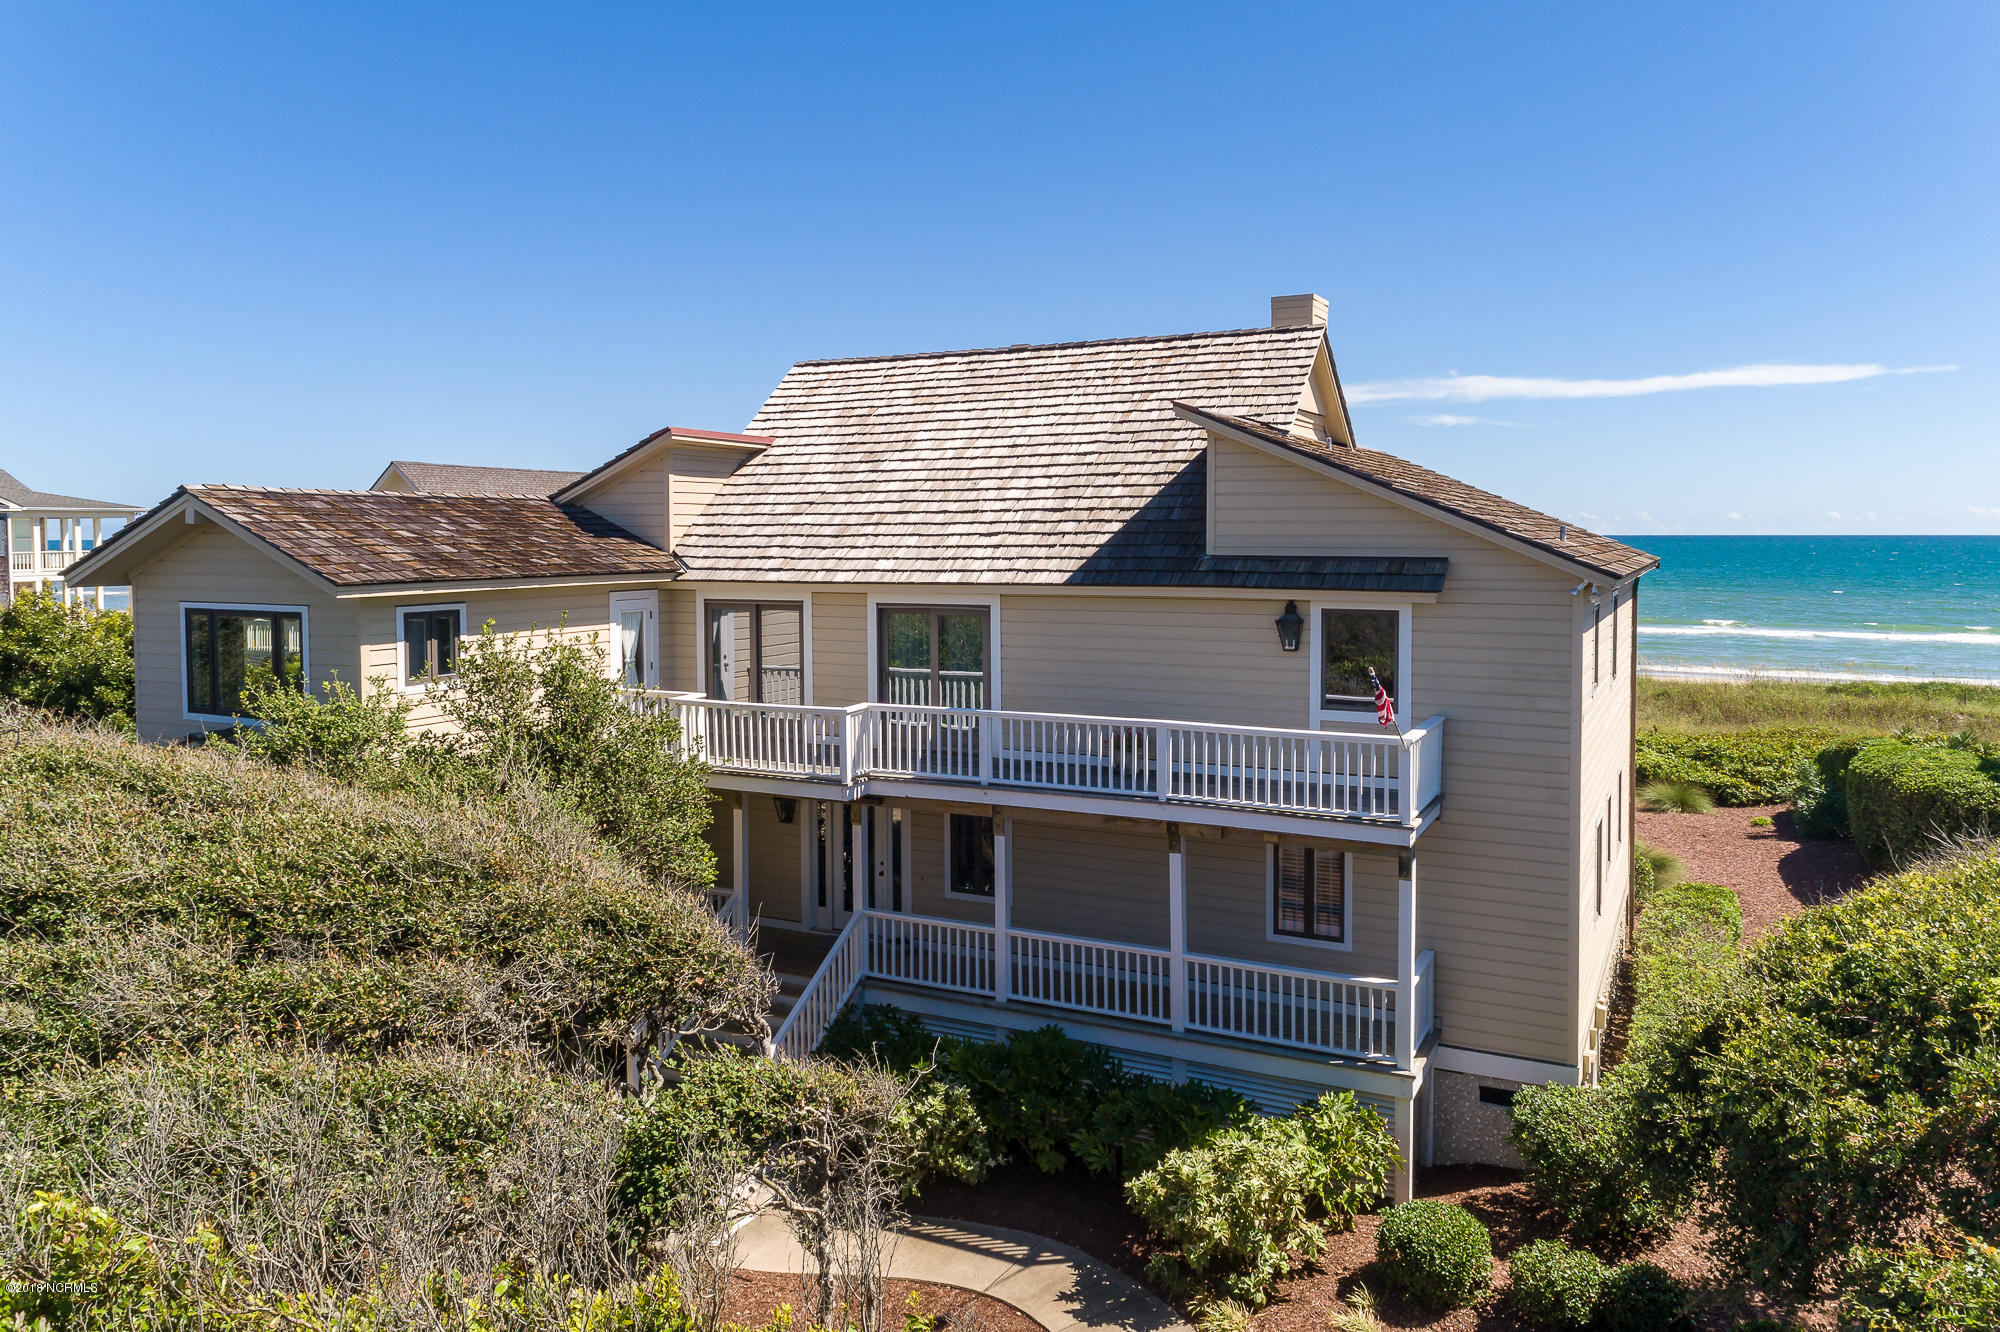 459 Maritime Place, Pine Knoll Shores, North Carolina, 4 Bedrooms Bedrooms, 9 Rooms Rooms,4 BathroomsBathrooms,Single family residence,For sale,Maritime,100133035